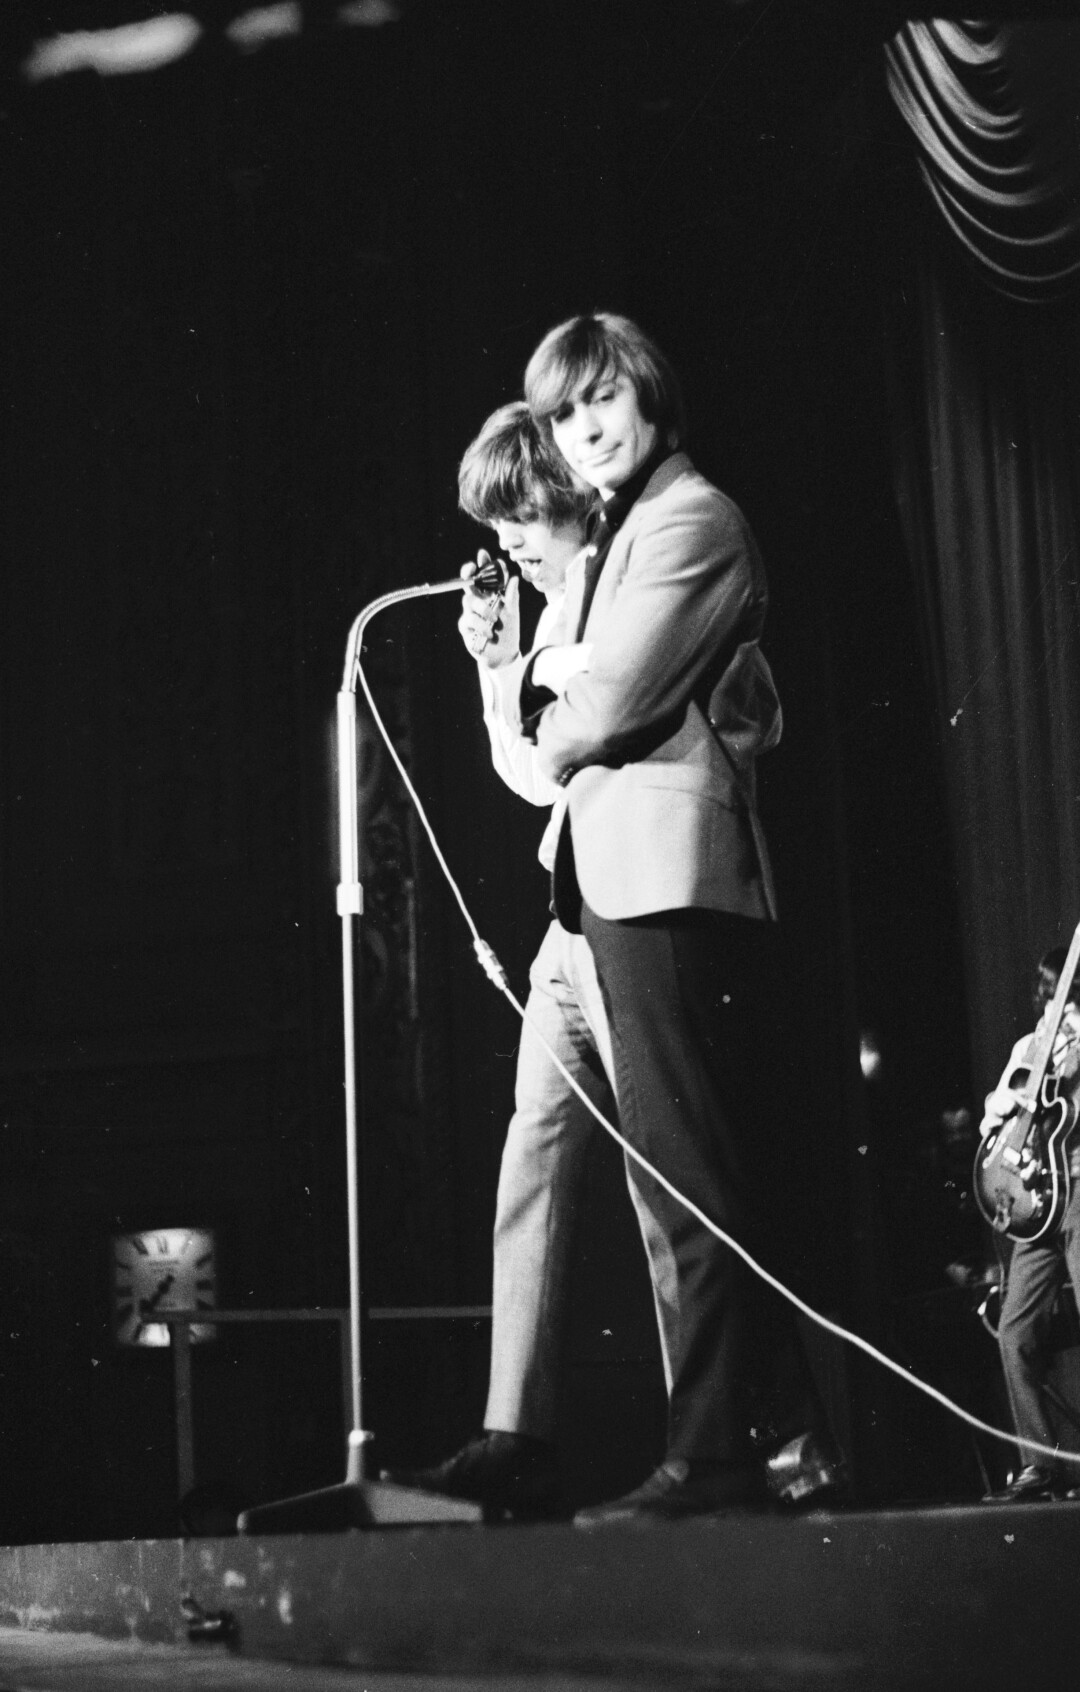 January 1965: Singer Mick Jagger and drummer Charlie Watts stand at a microphone.